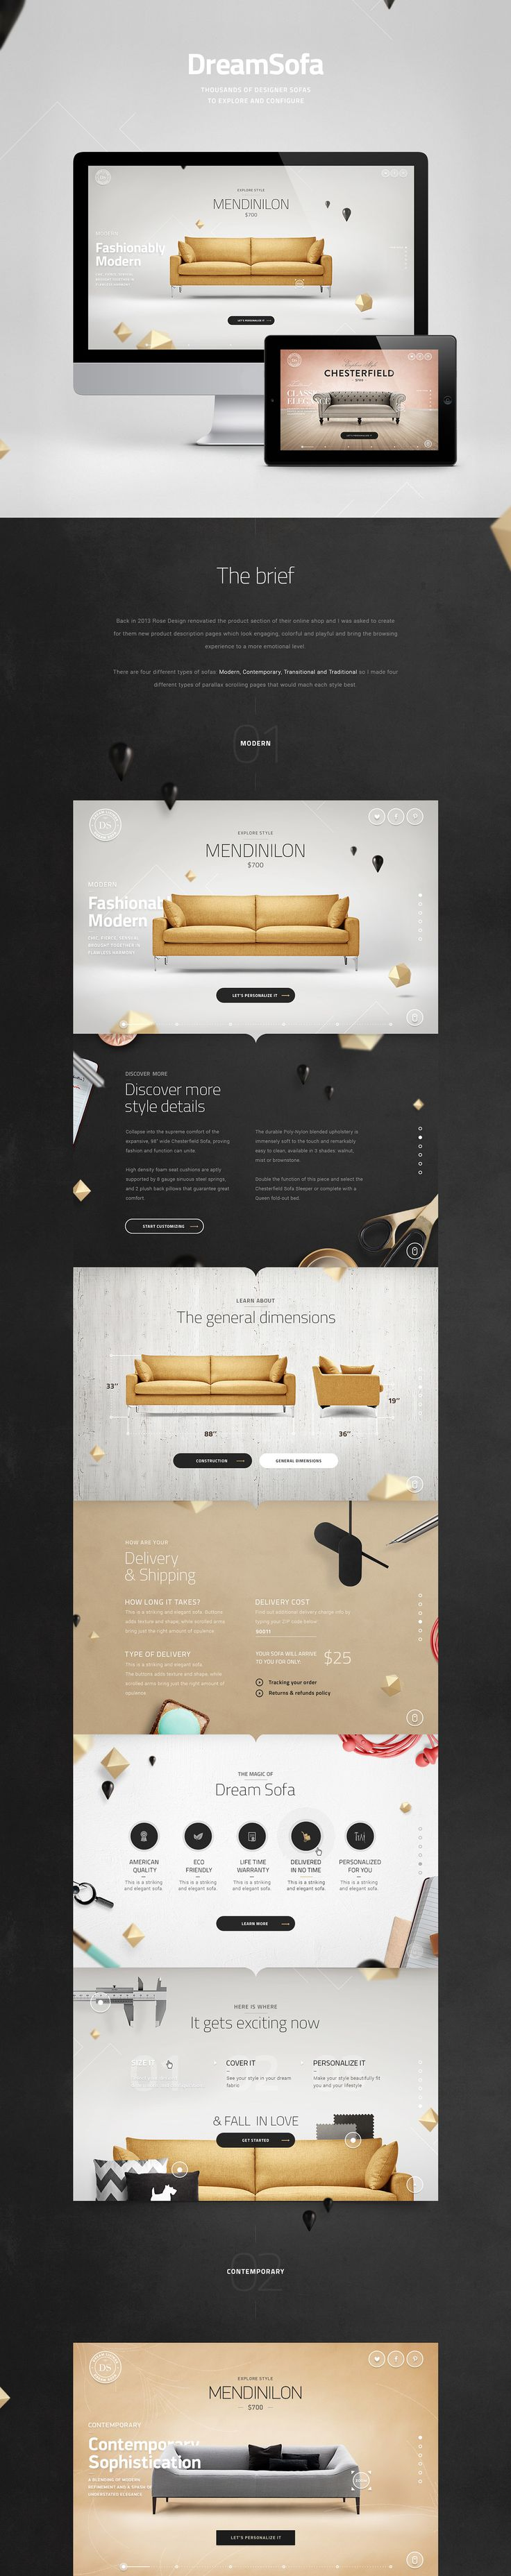 DreamSofa on Web Design Served